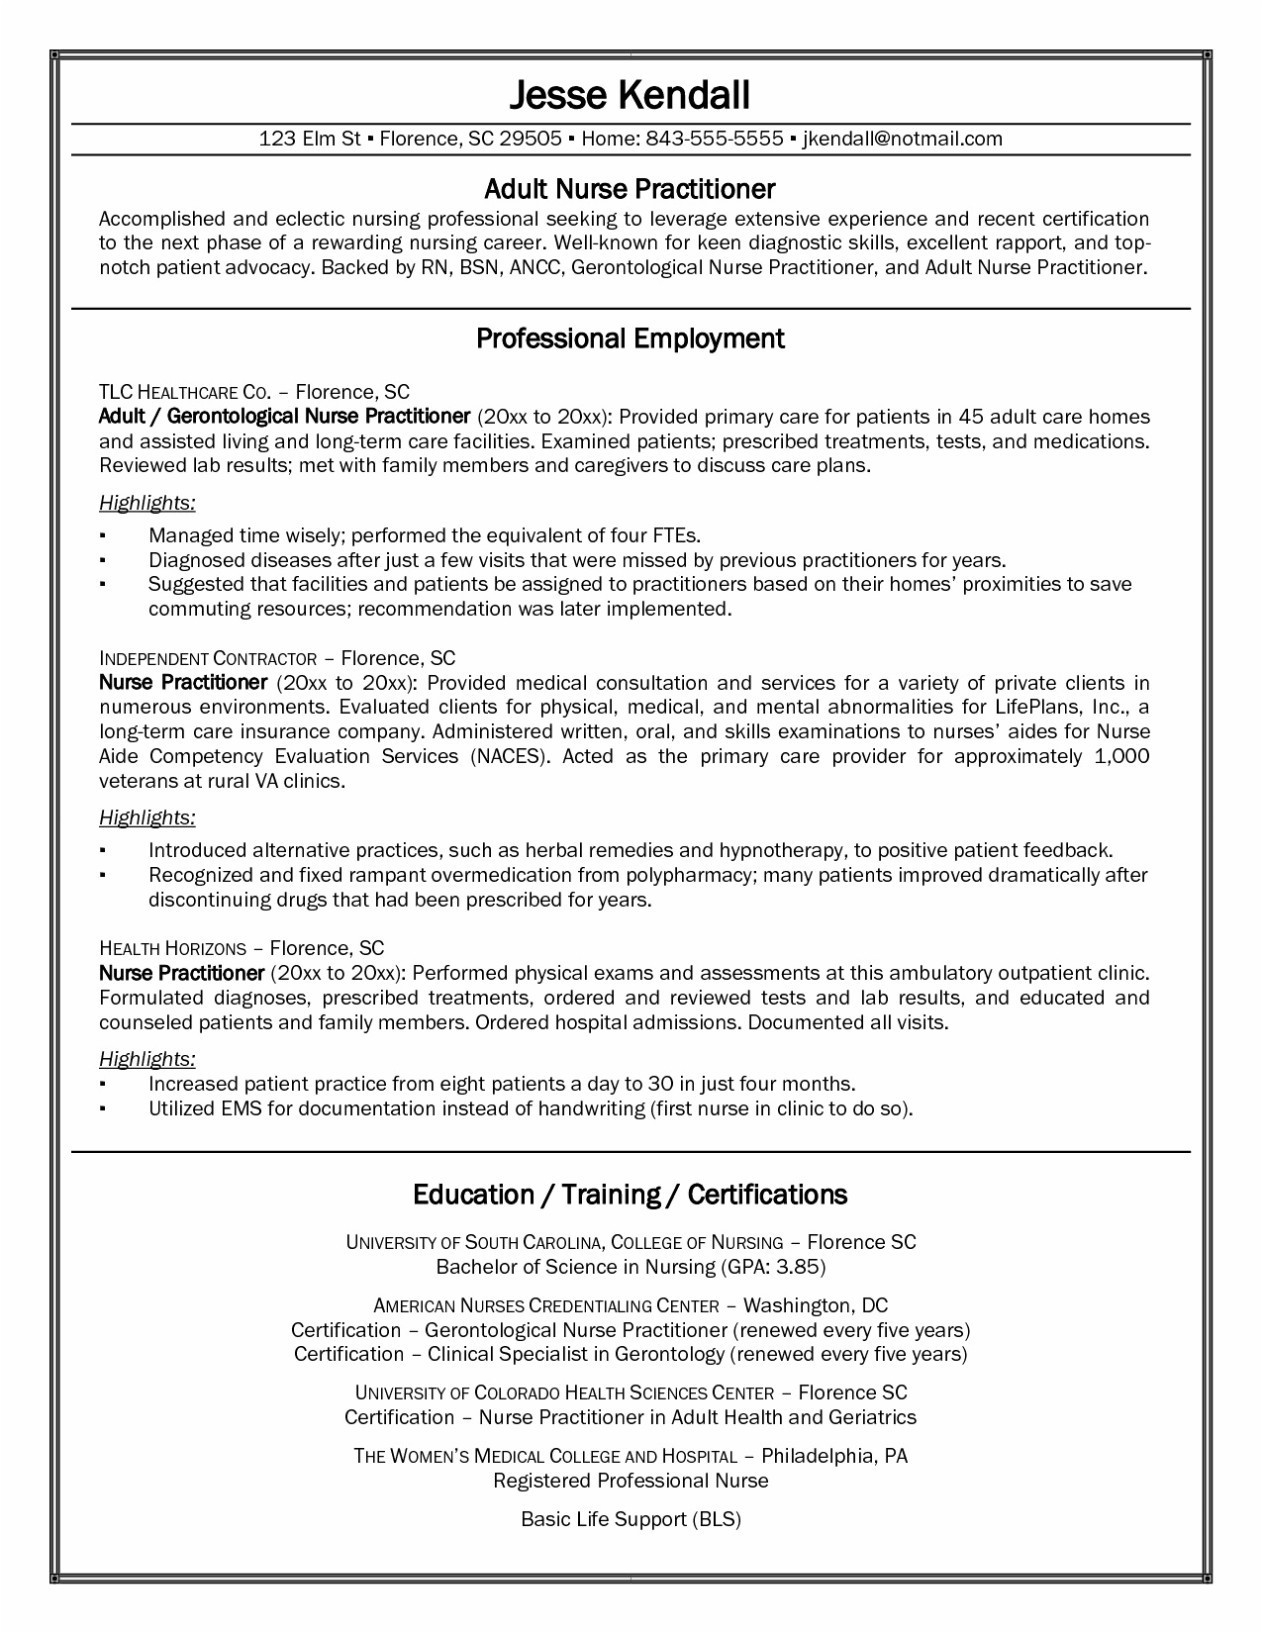 New Grad Nurse Resume Experienced Rn Resume Template Samples Database Nursing Cv Ireland Emergency New new grad nurse resume|wikiresume.com